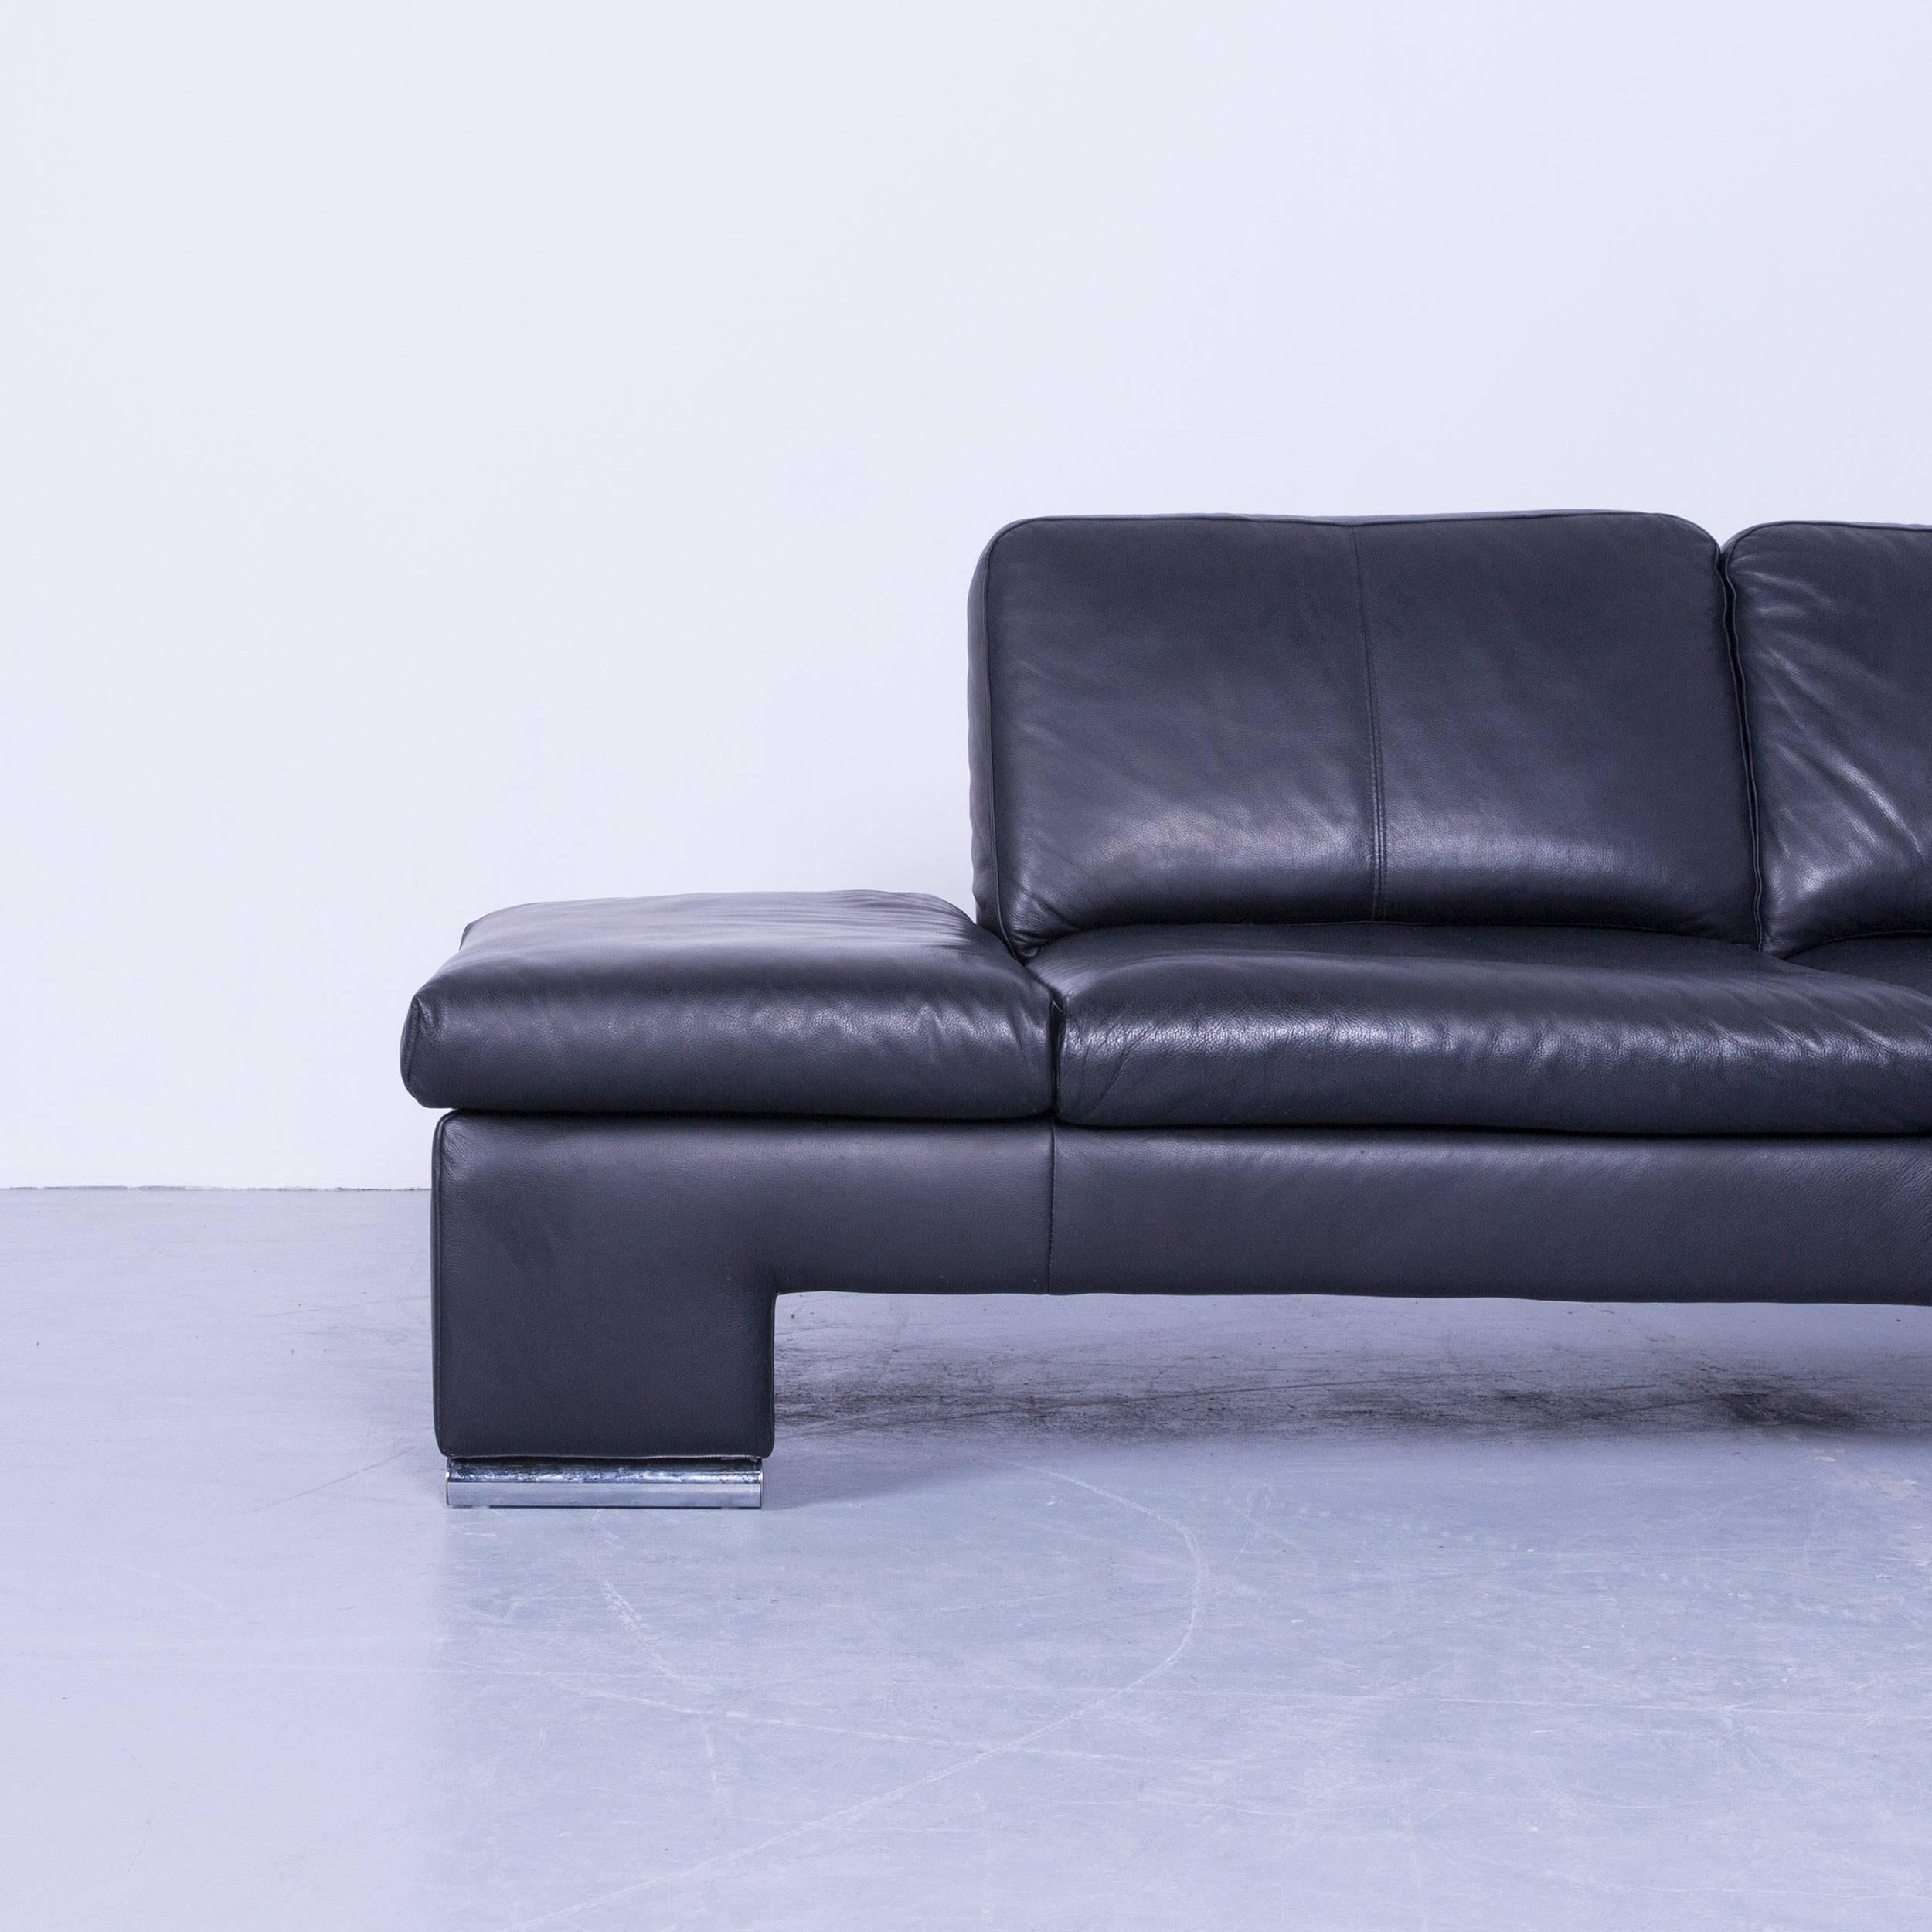 Sofa Von Interio Couch Schwarz Leder Simple Best Cheap Beautiful Rolf Benz